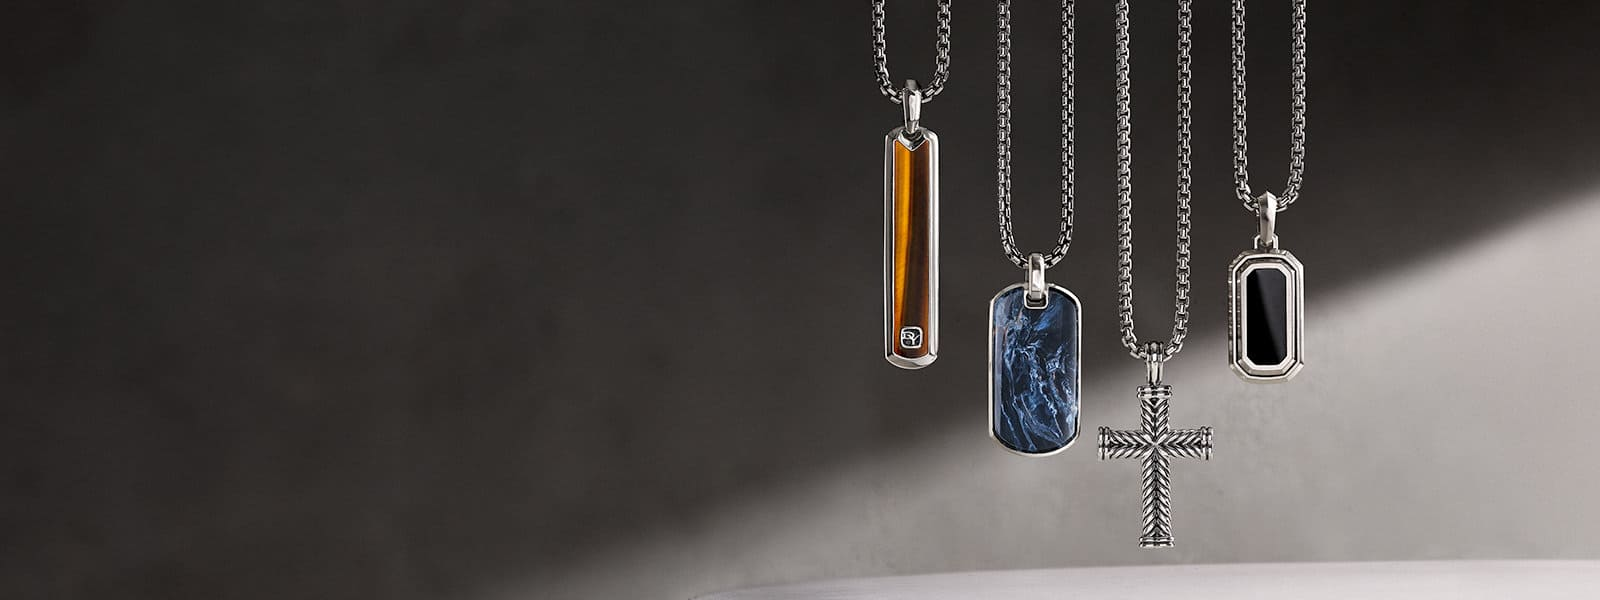 David Yurman Men's Exotic Stone, Chevron cross and Deco pendants, in sterling silver with or without tiger's eye, pietersite or black onyx, each hanging on a sterling silver box chain in front of a stone wall with a ray of light.